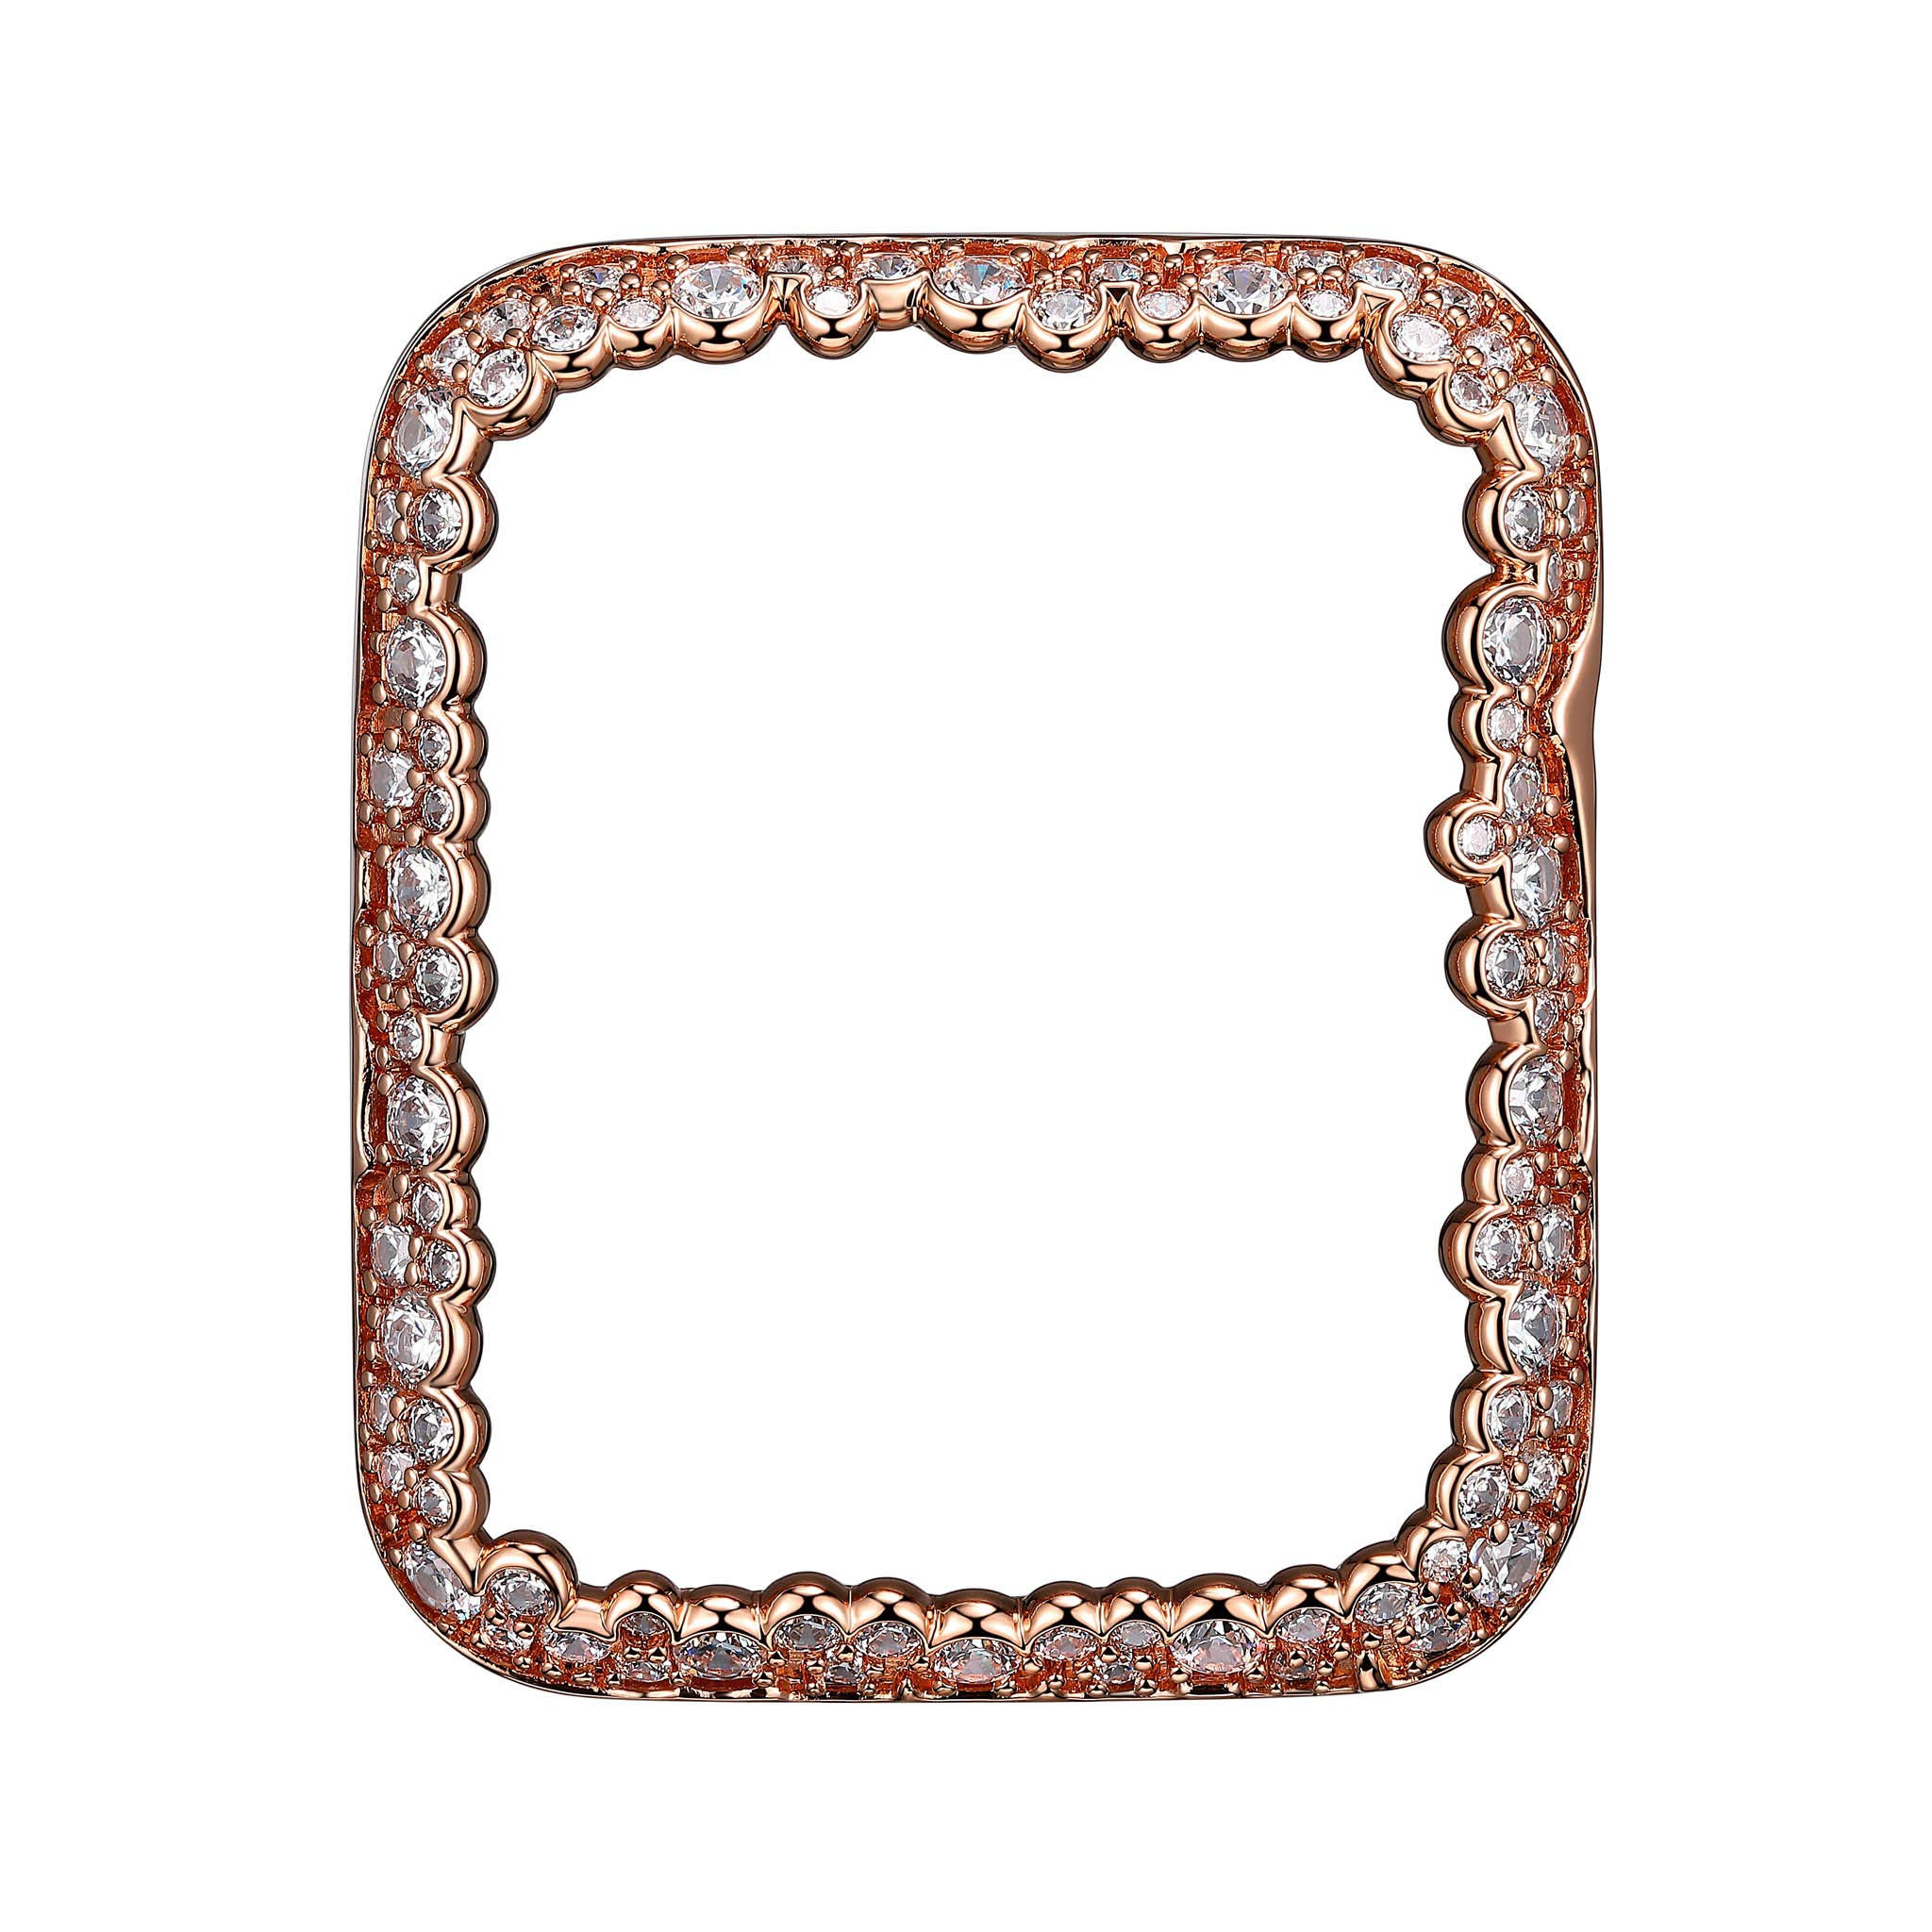 SKYB 14K Rose Gold Plated Champagne Bubbles Jewelry-Style Apple Watch Case with Swarovski Zirconia CZ Border - Large (Fits 42mm iWatch)